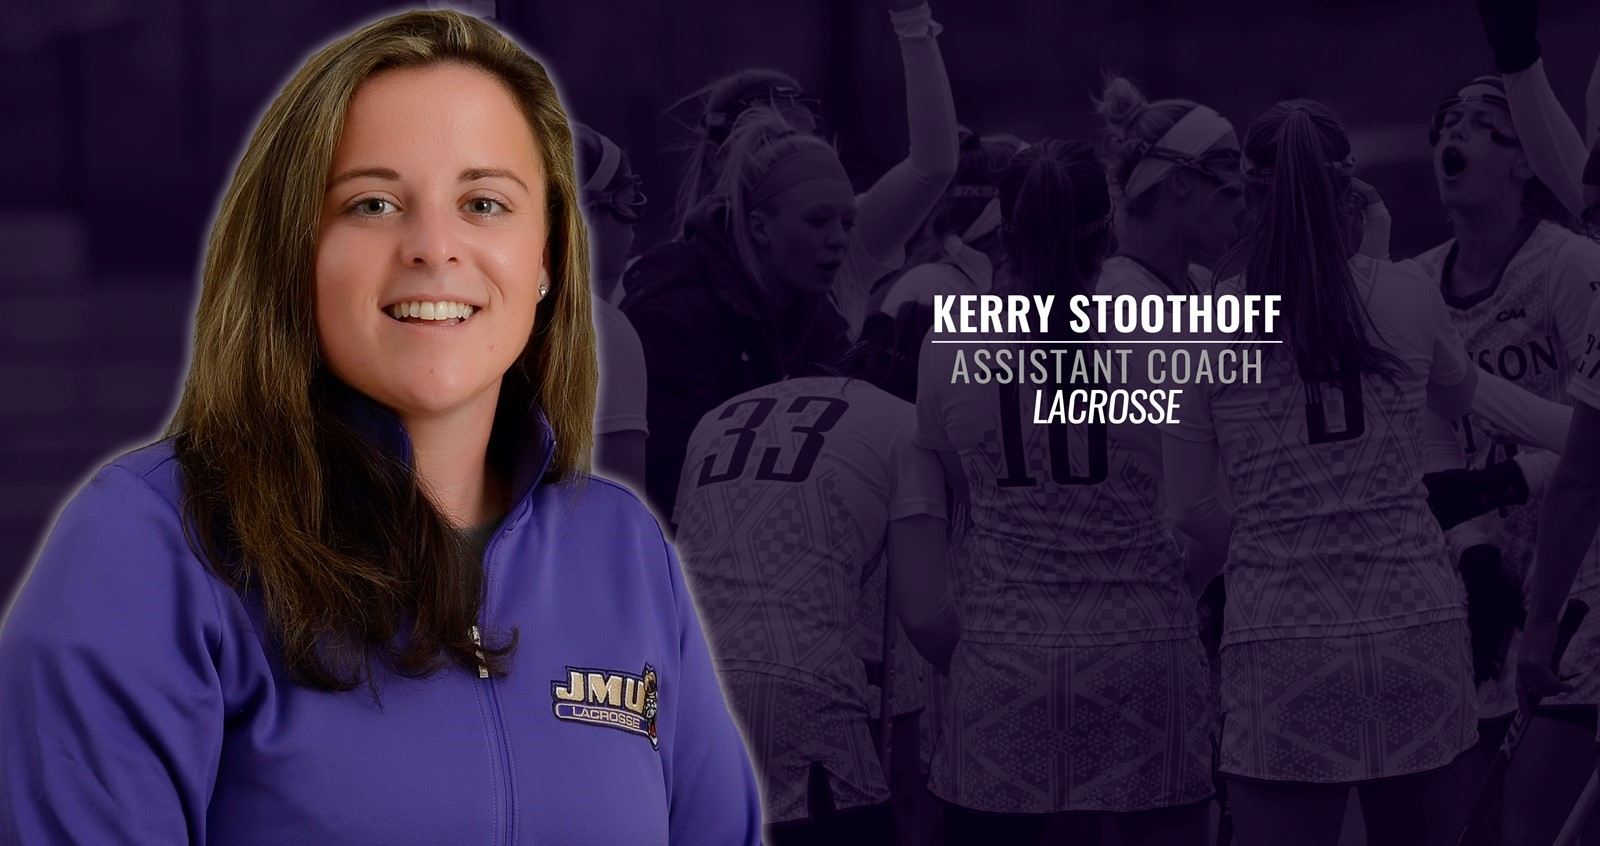 Women's Lacrosse: Klaes-Bawcombe Hires Kerry Stoothoff as Lacrosse Assistant Coach